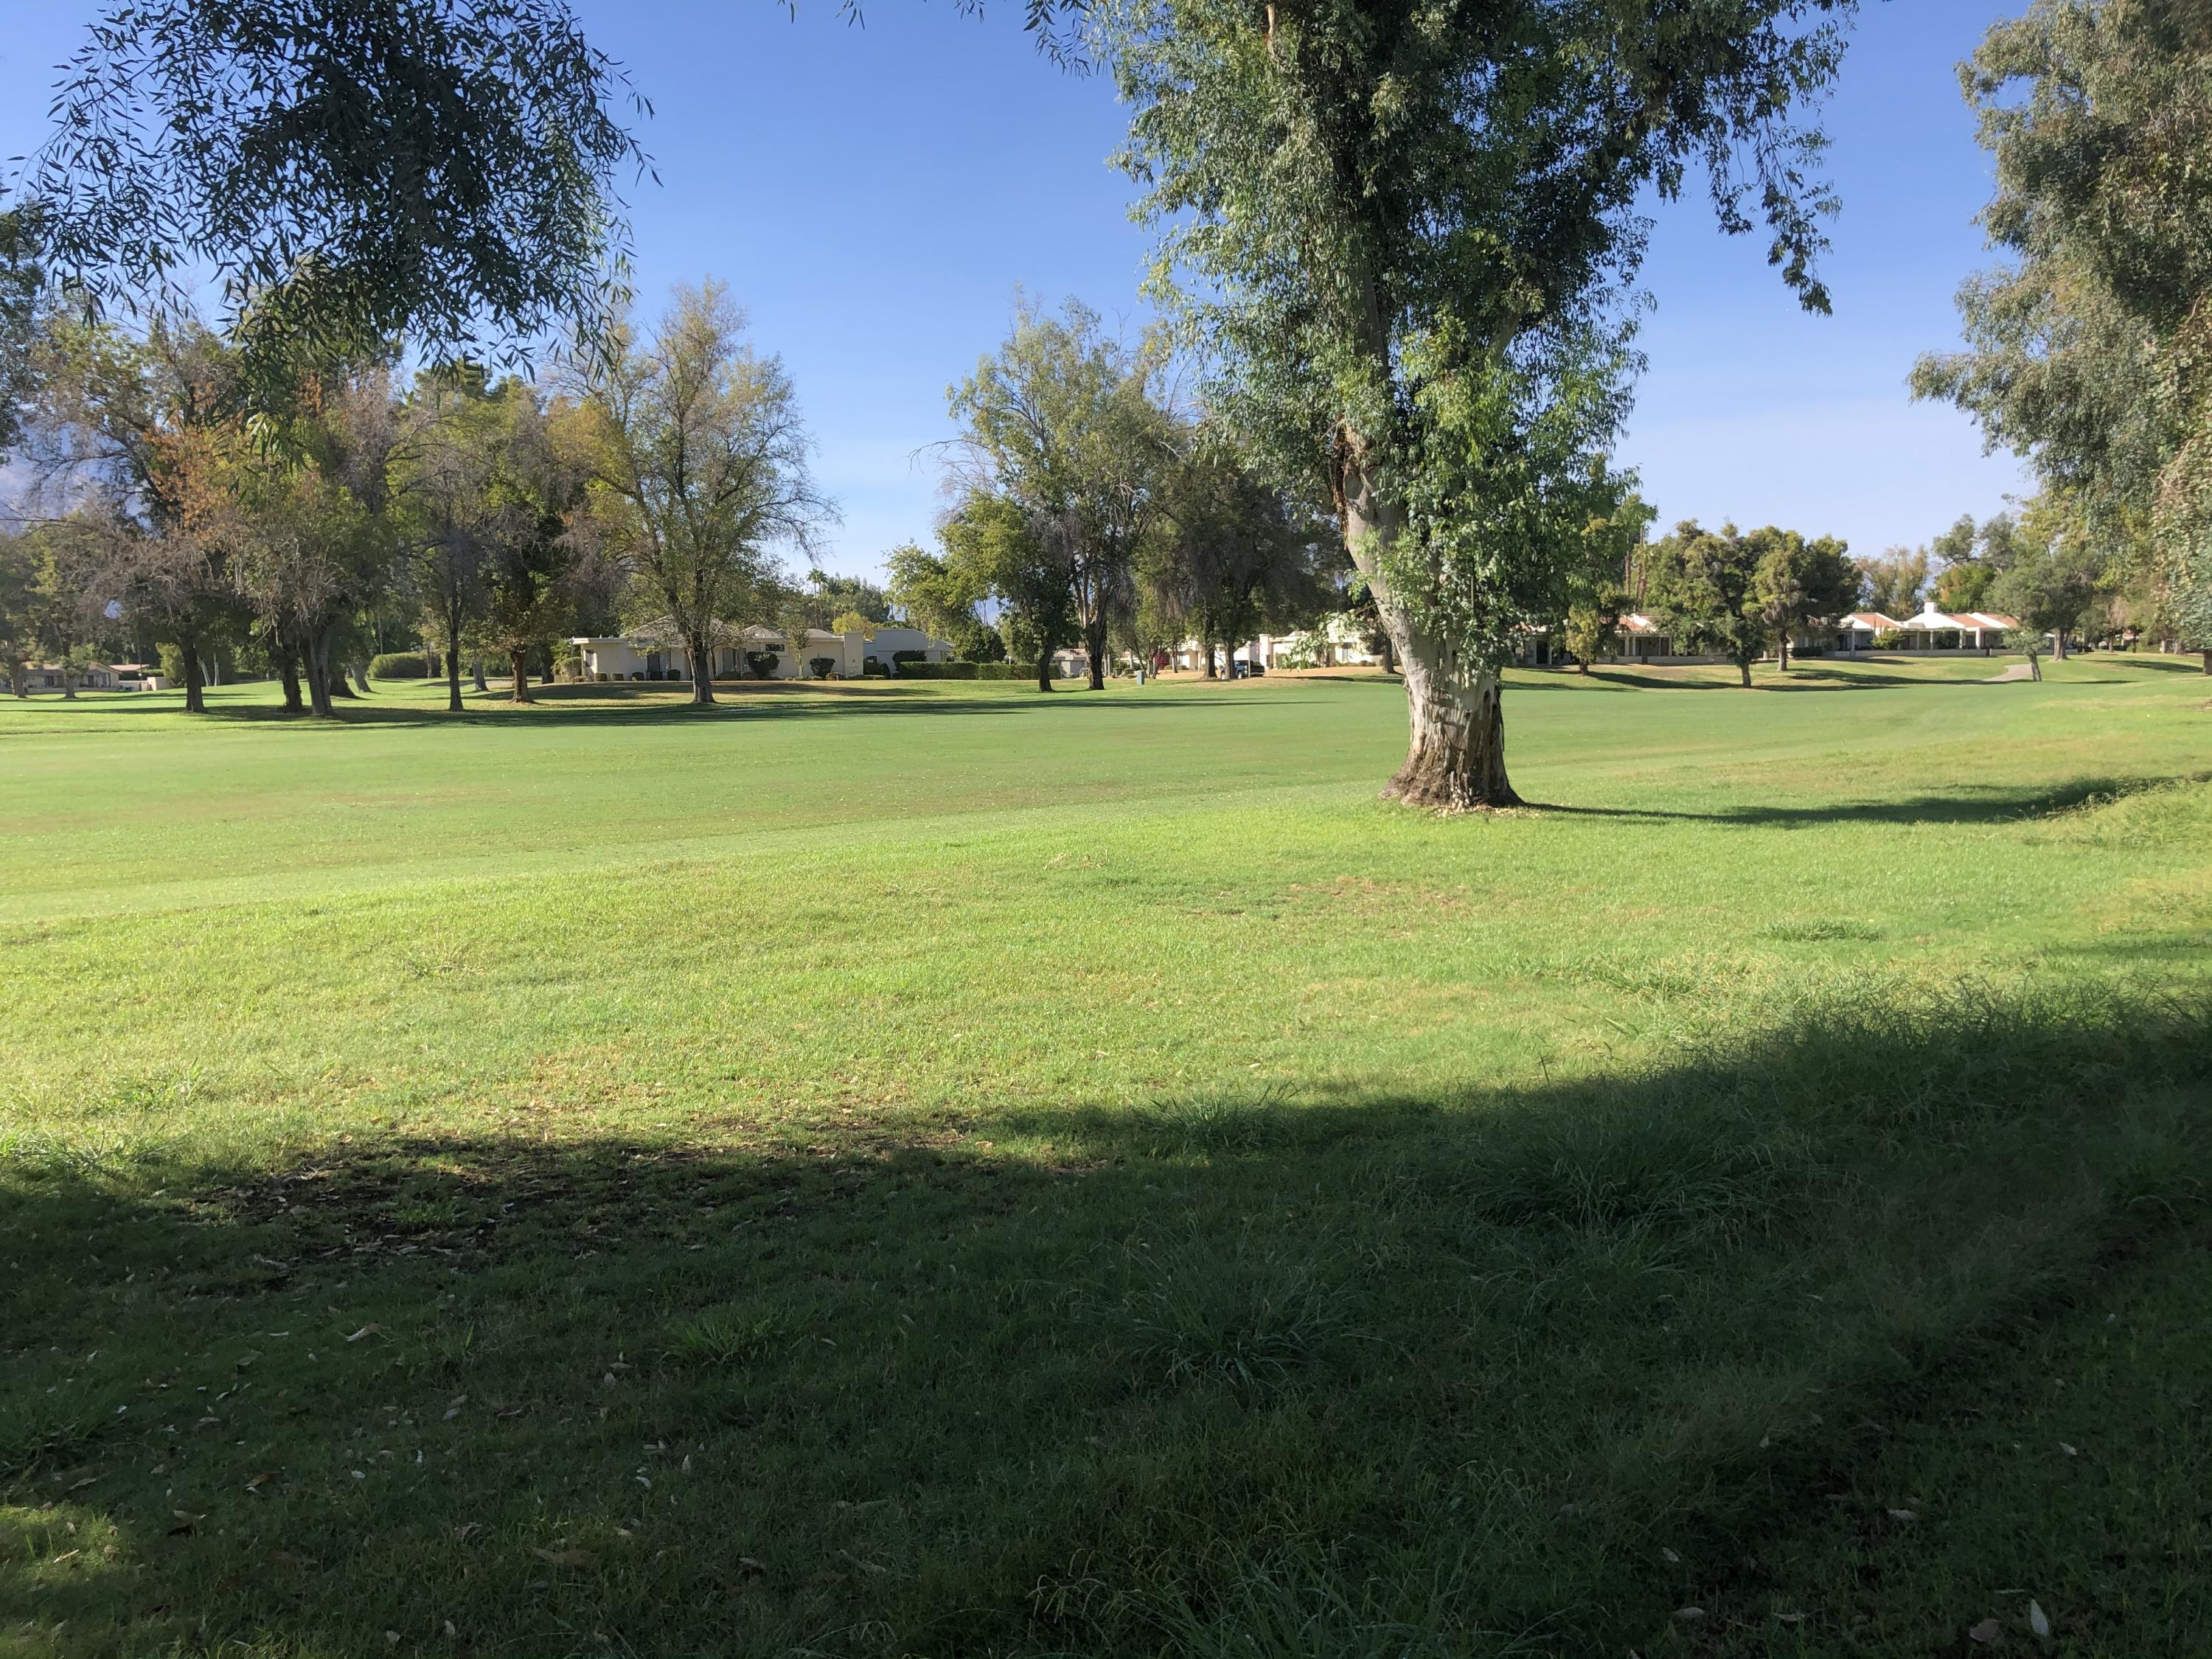 This is a picture Perfect Desert Getaway !,  Beautiful  golf course location  with patios to enjoy morning and afternoon sun Remodeled throughout  . Vaulted ceilings in living room and dining room ...cozy fireplace... well separated  bedrooms. Both baths have skylights.  Spacious eat in kitchen .. opens to barbecue patio.  Cathedral Canyon offers  challenging golf .. active tennis program .. new onsite restaurant '' Jax''   Great Price ! Great location!  Won't last